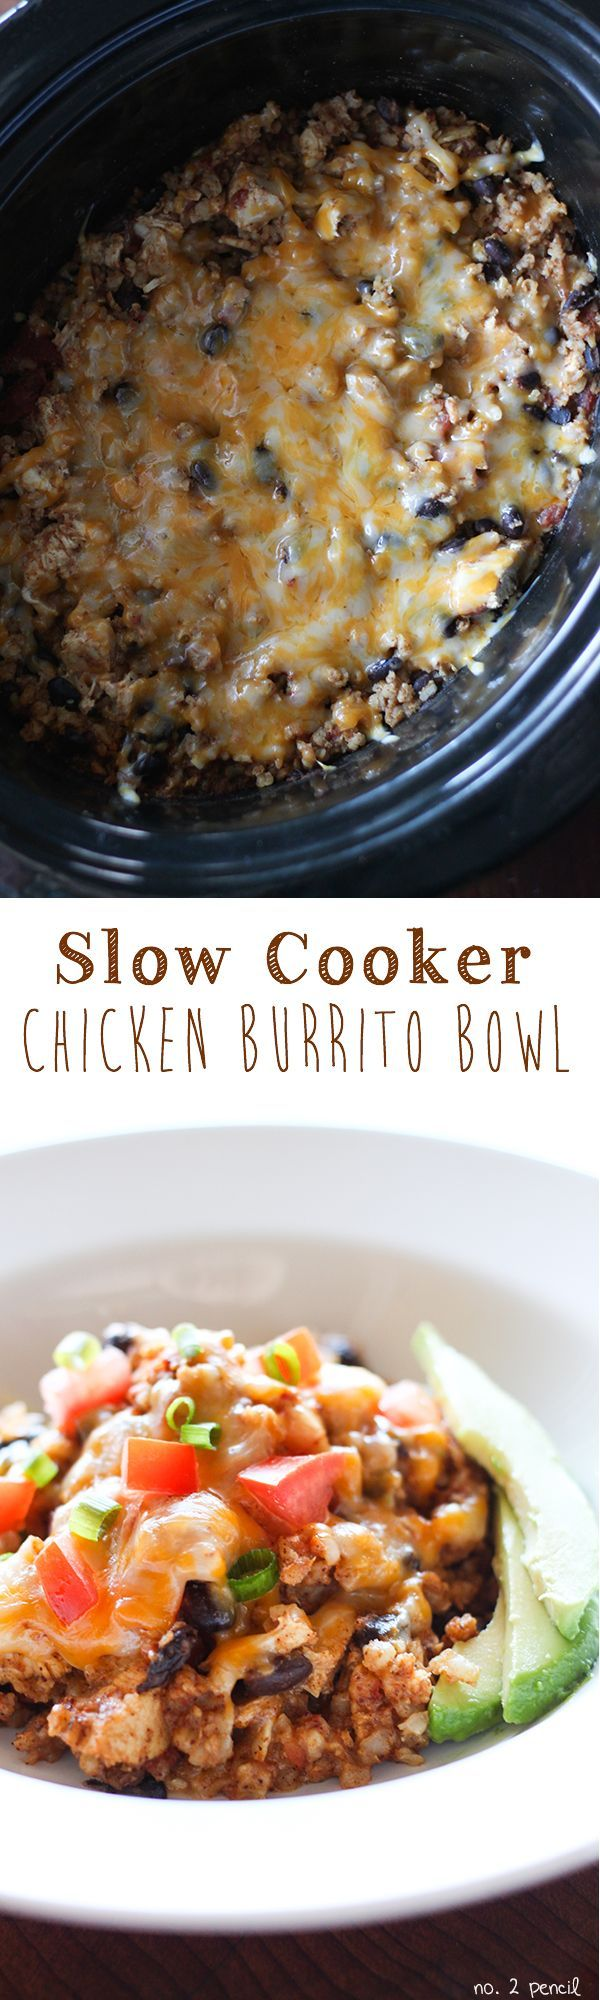 Slow Cooker Chicken Burrito Bowl - tender chicken, black beans and brown rice in an easy slow cooker recipe.